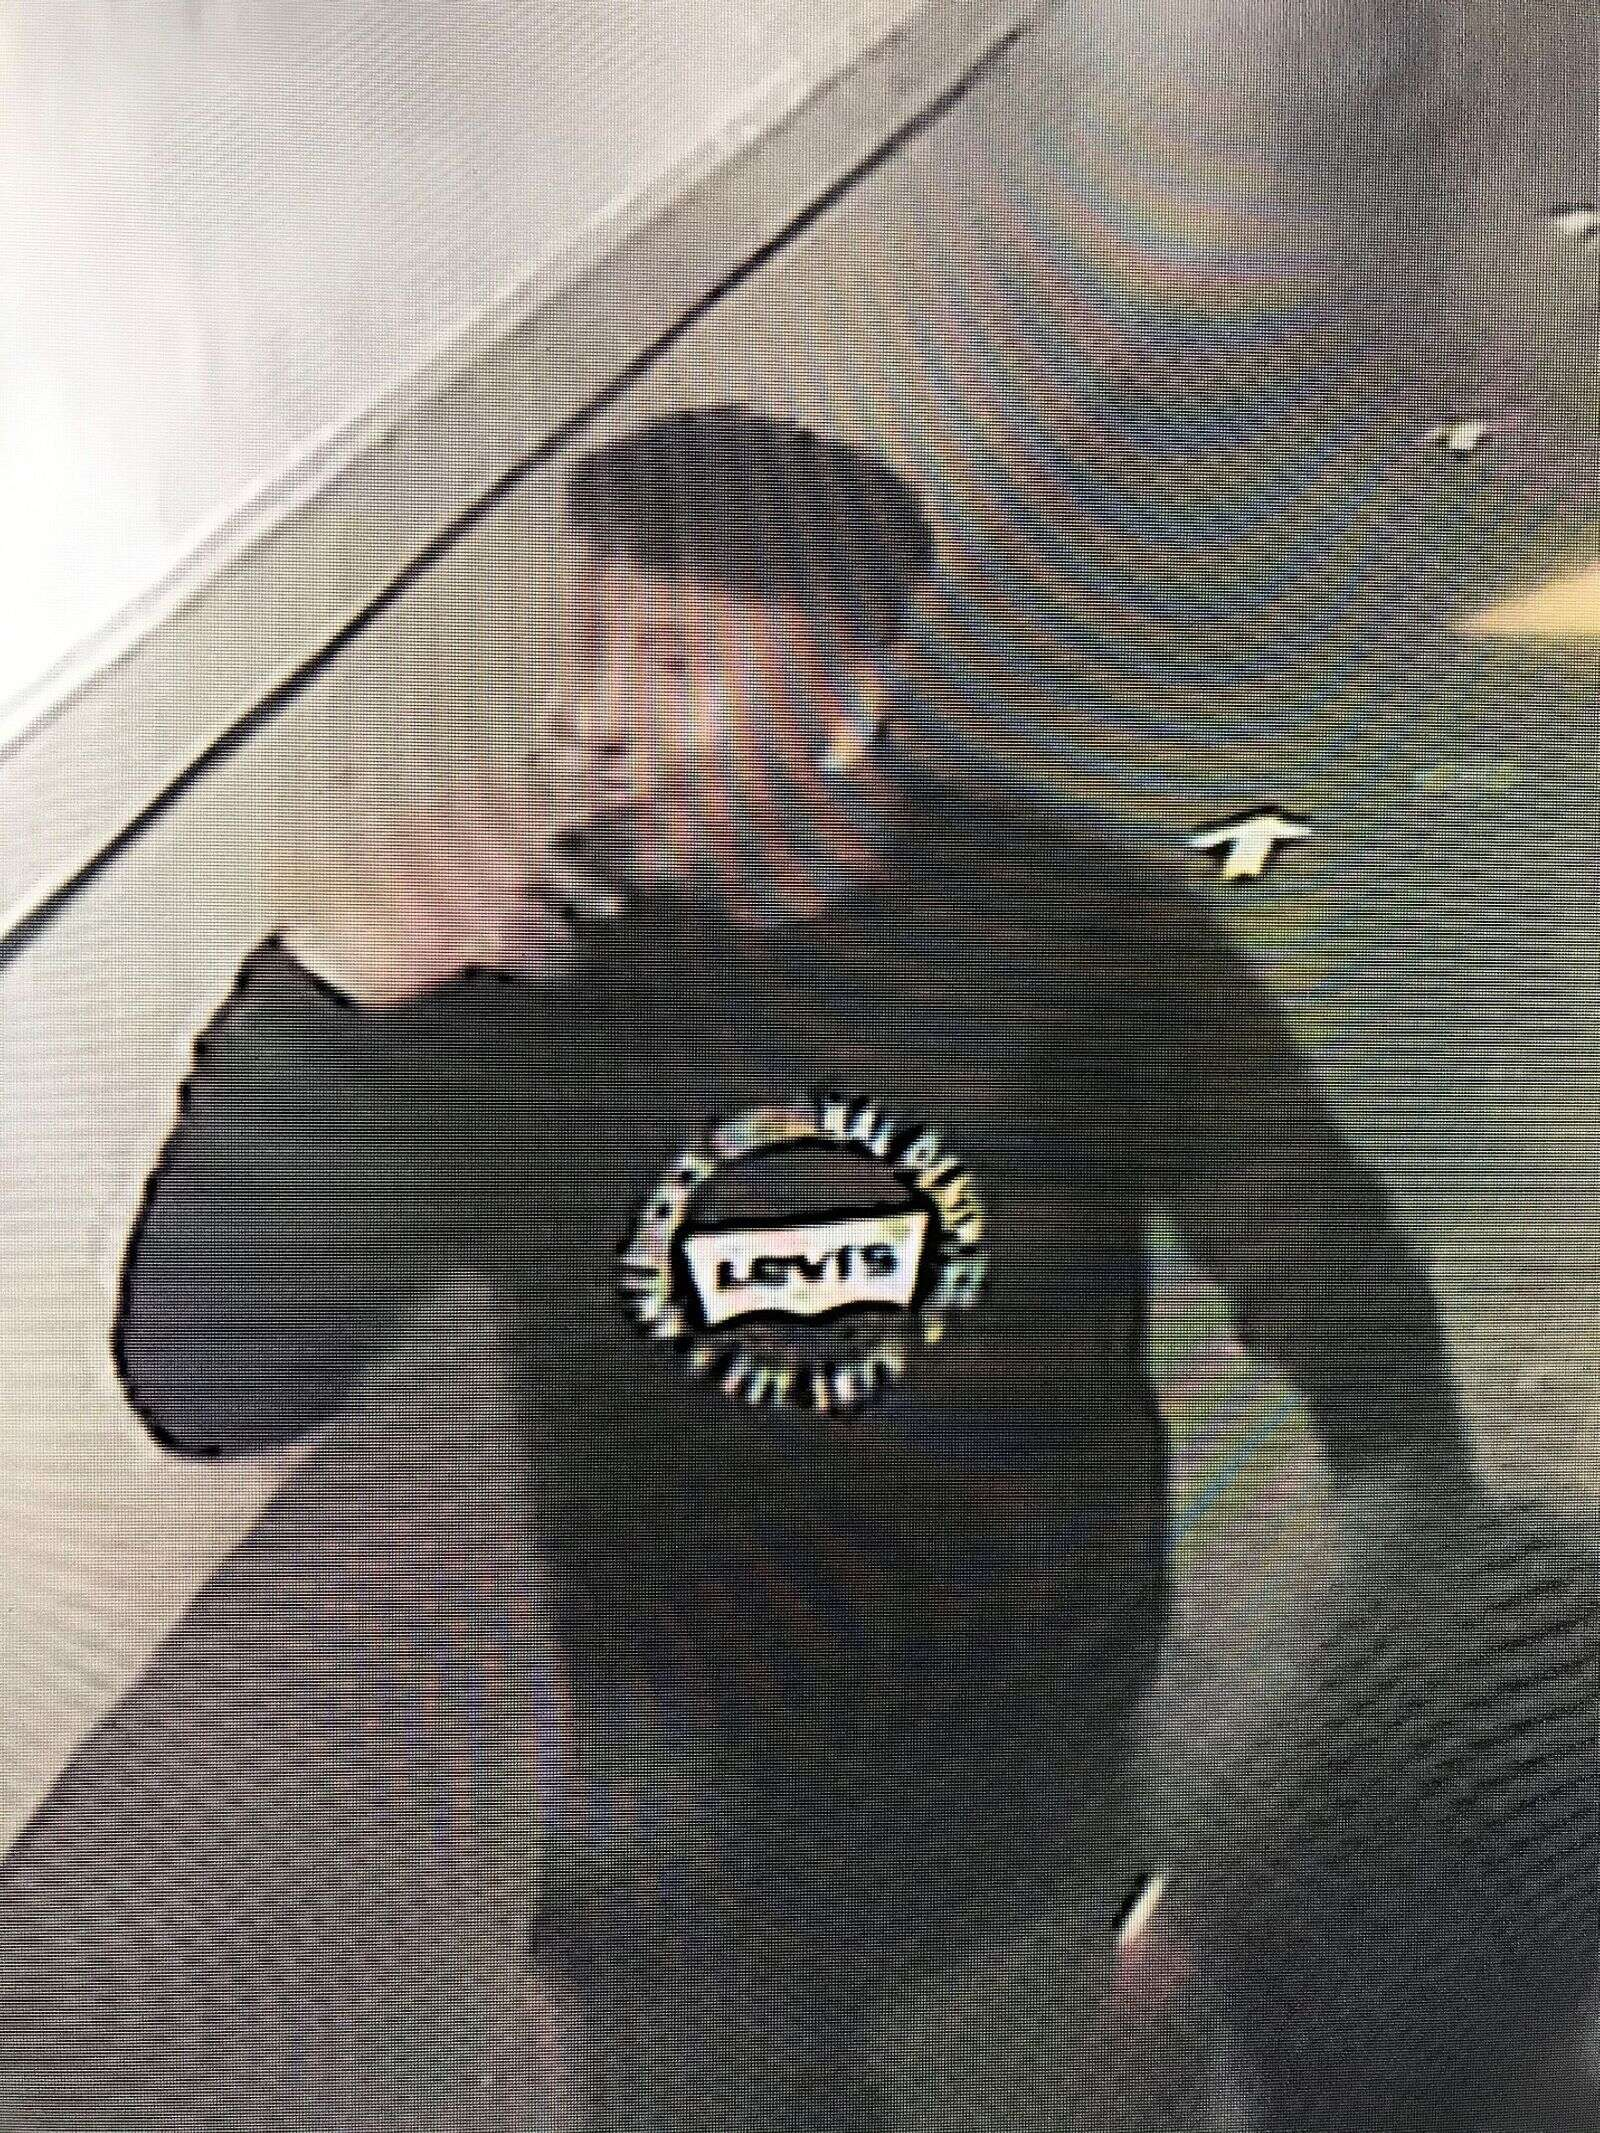 Vail Police are asking for the public's help identifying two men who witnessed an assault during the evening hours of Dec. 3.  Special to the Daily